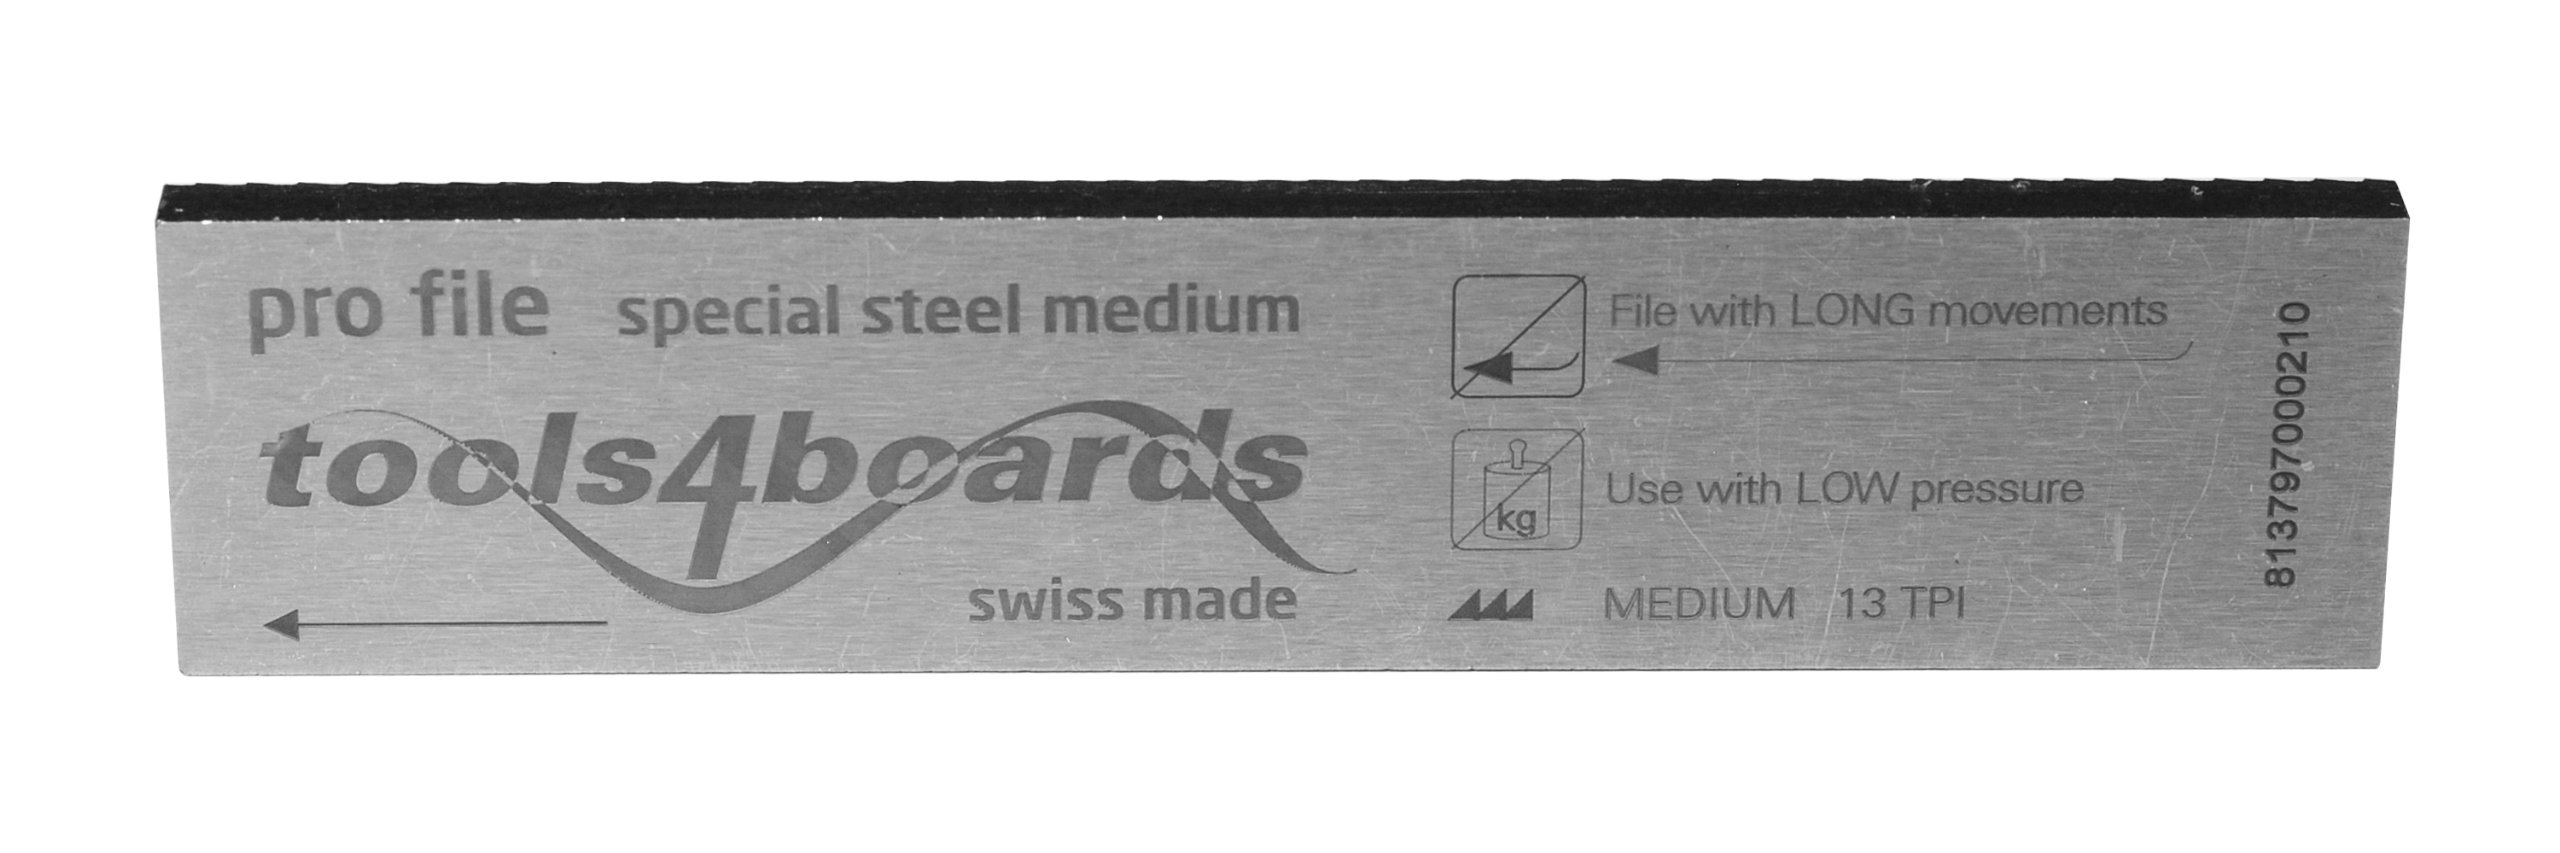 Tools4Boards Pro File Medium Cut Special Steel Race Ski and Snowboard File (4-Inch/100mm) by Tools4Boards